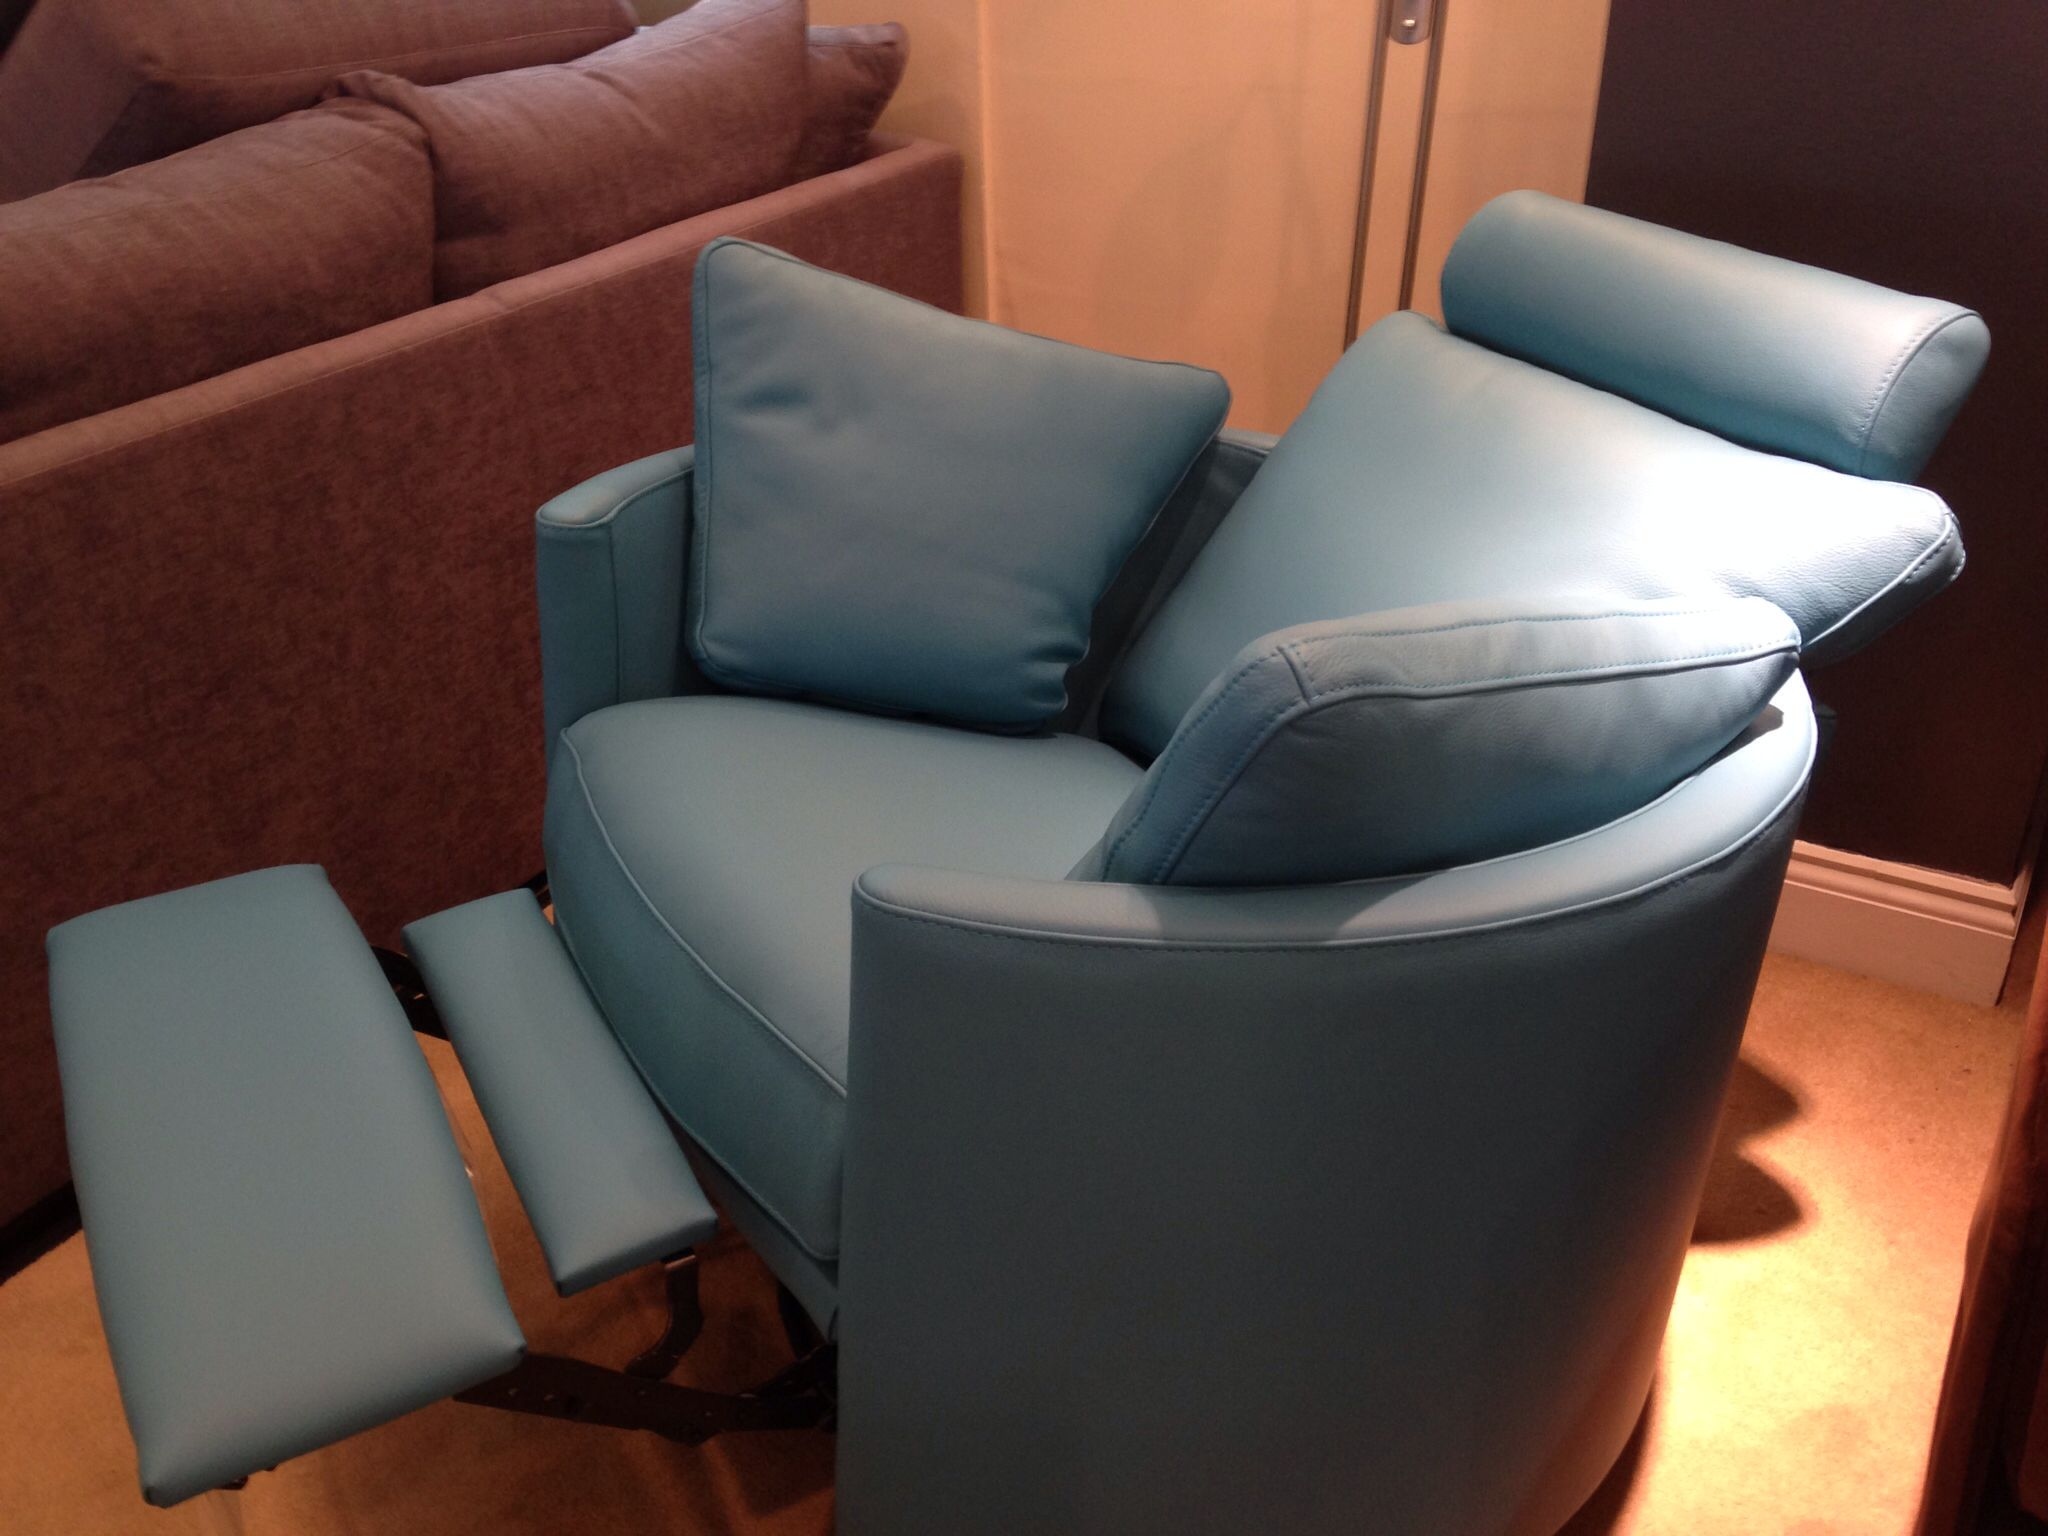 Charmant Turquoise Blue Leather Covered Electric Contemporary Recliner, Just Arrived  In To Our Showroom As The Latest Display Model.